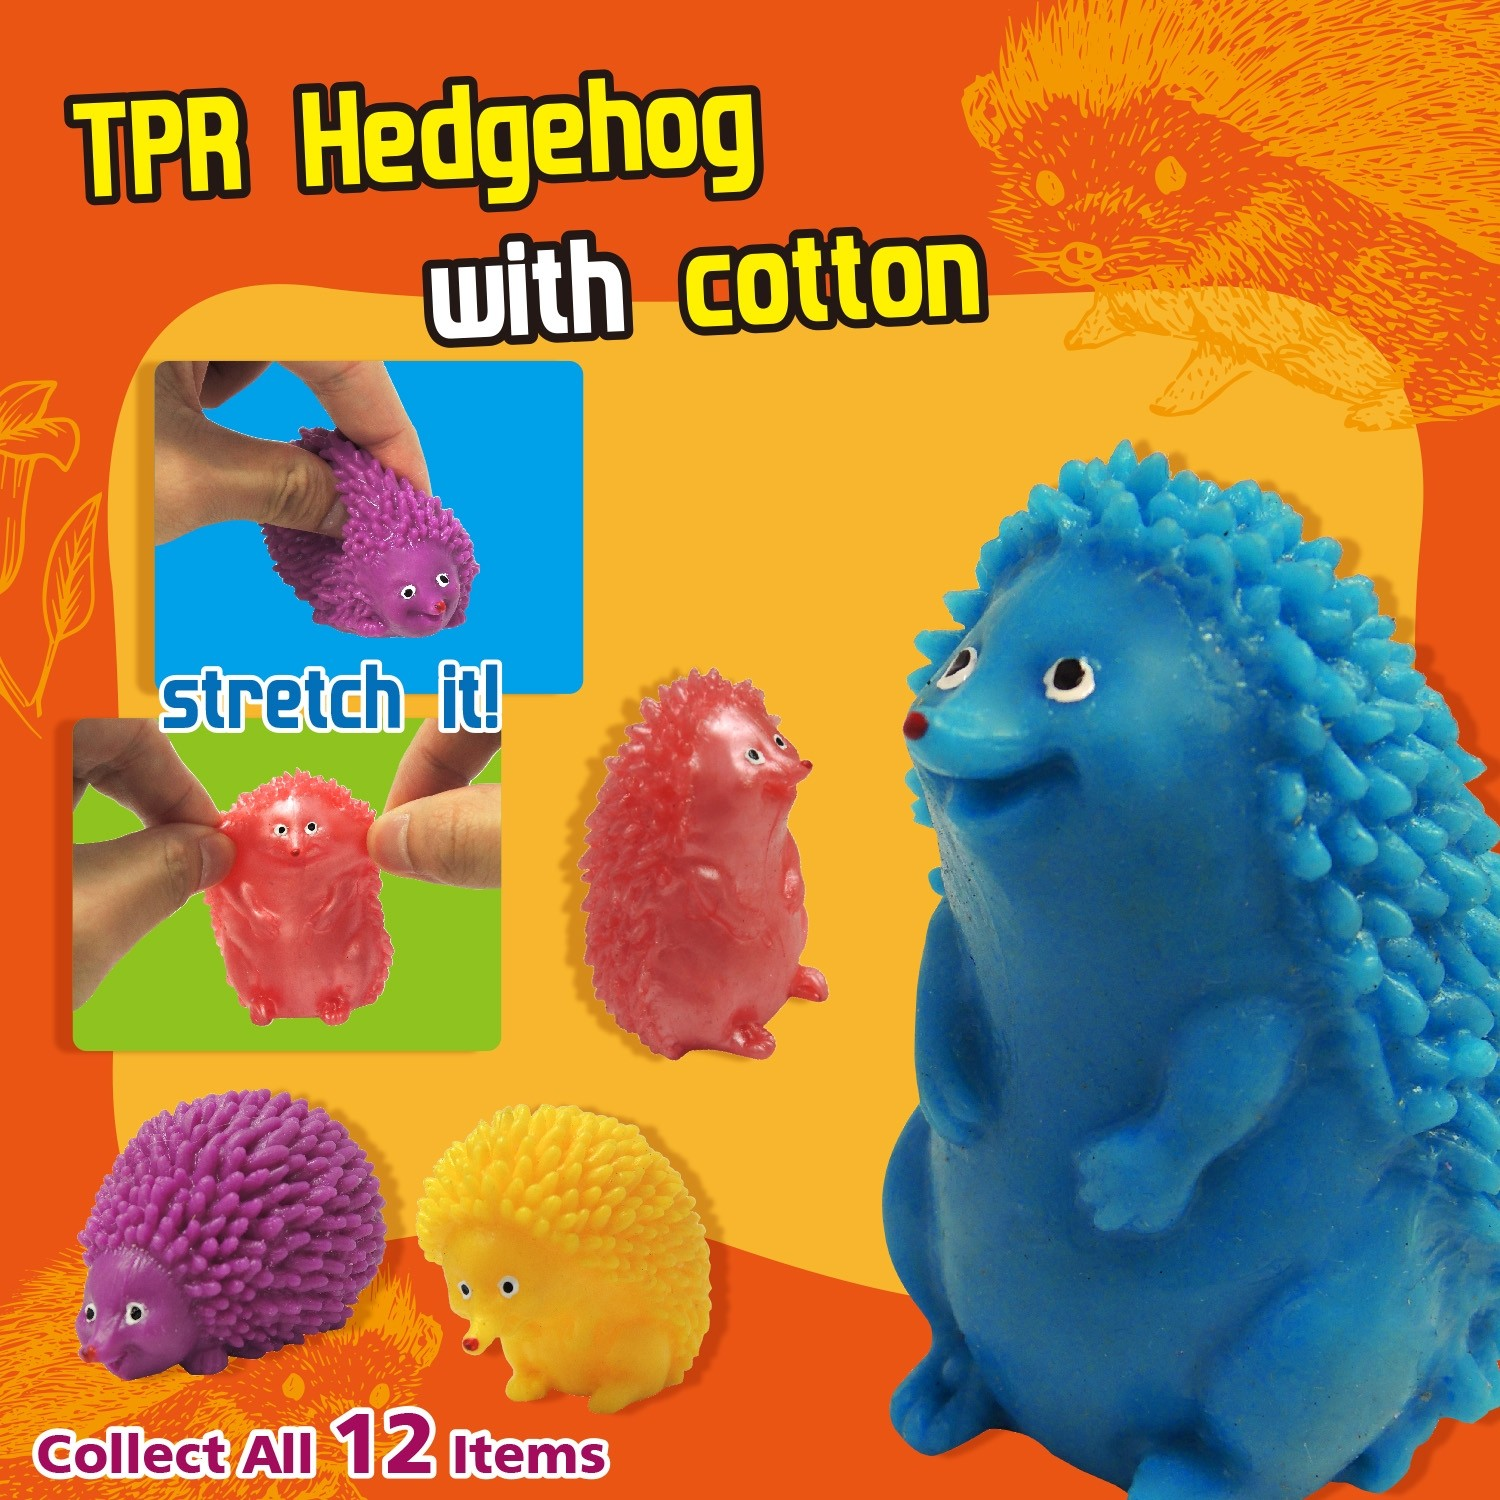 TPR Hedgehog with cotton